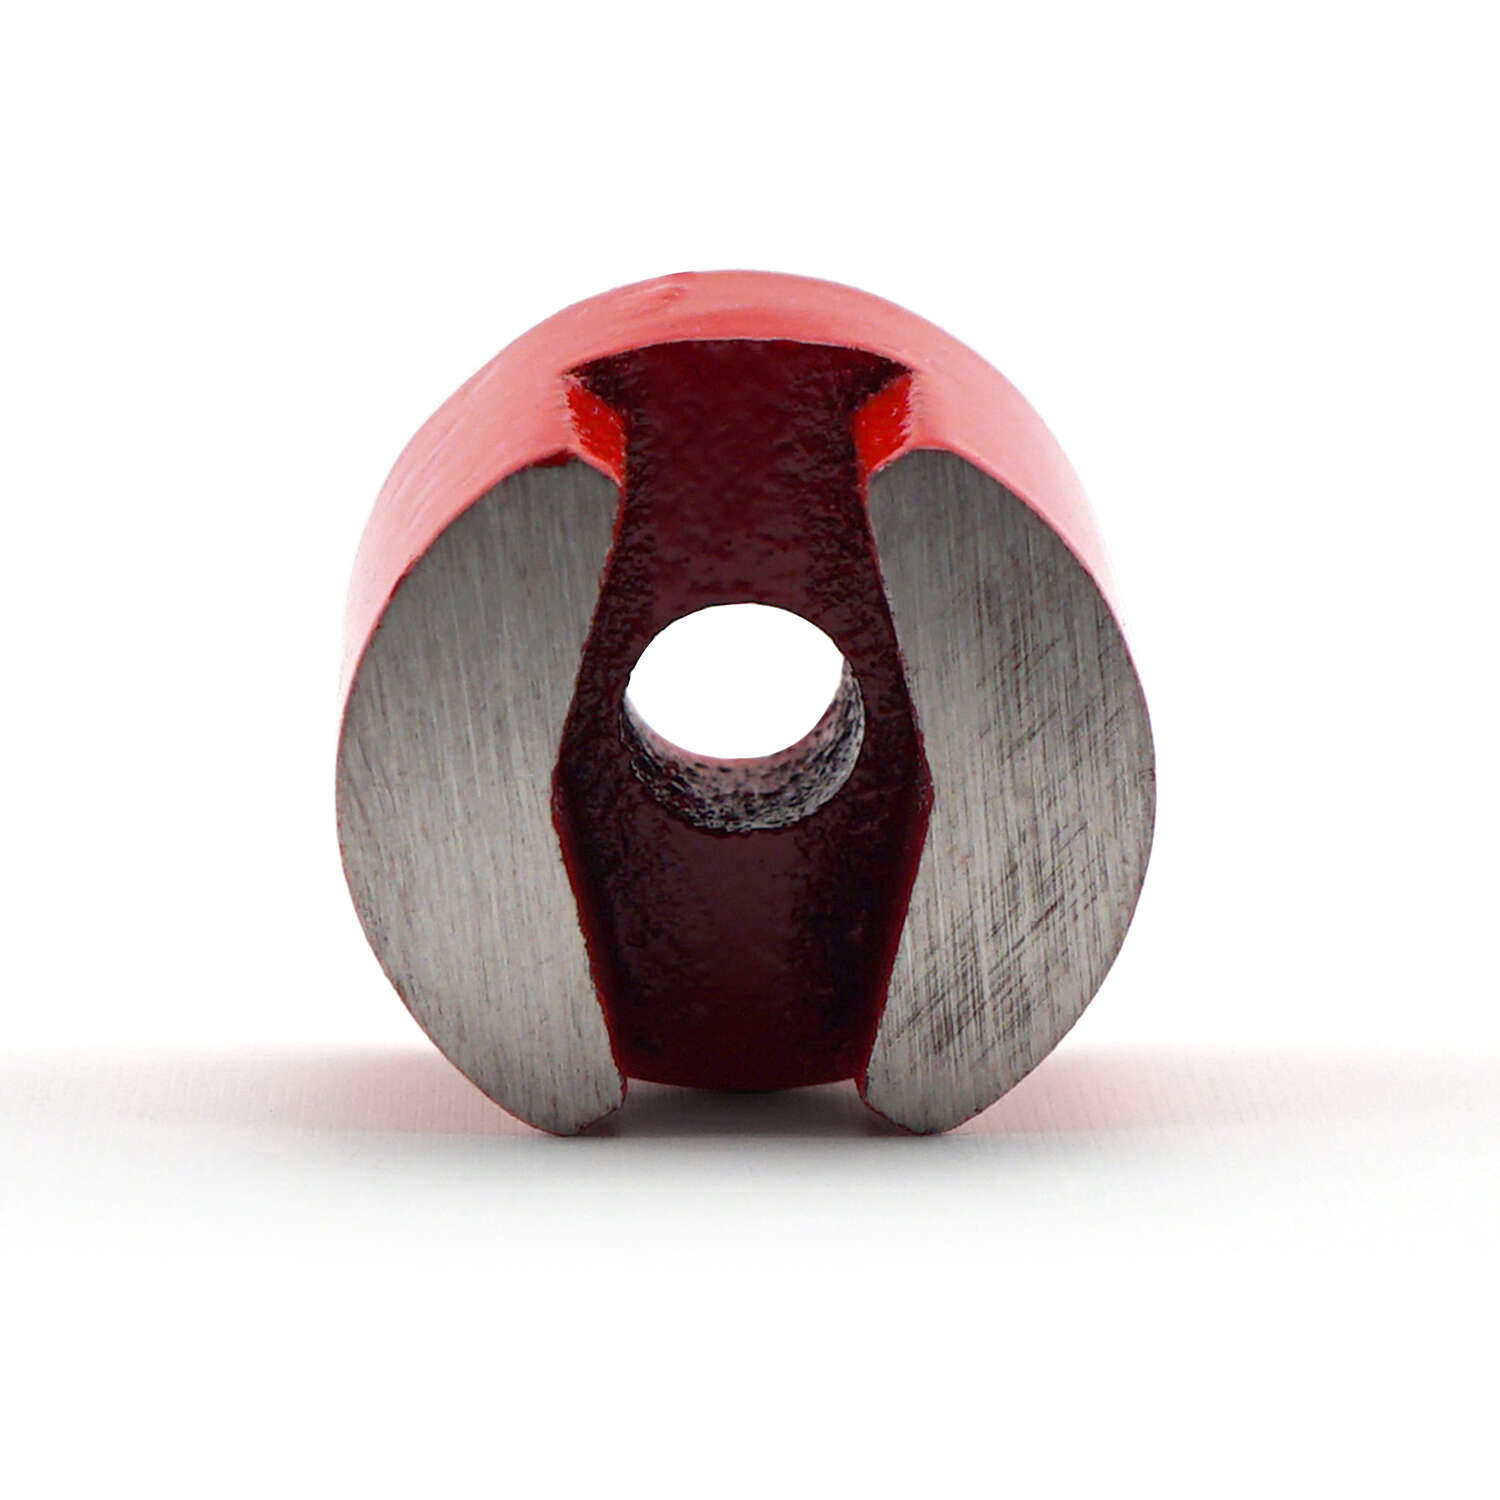 Master Magnetics  The Magnet Source  .5 Dia. in. Alnico  Work Holding Magnet  4 lb. Red  1 pc. 5.5 M